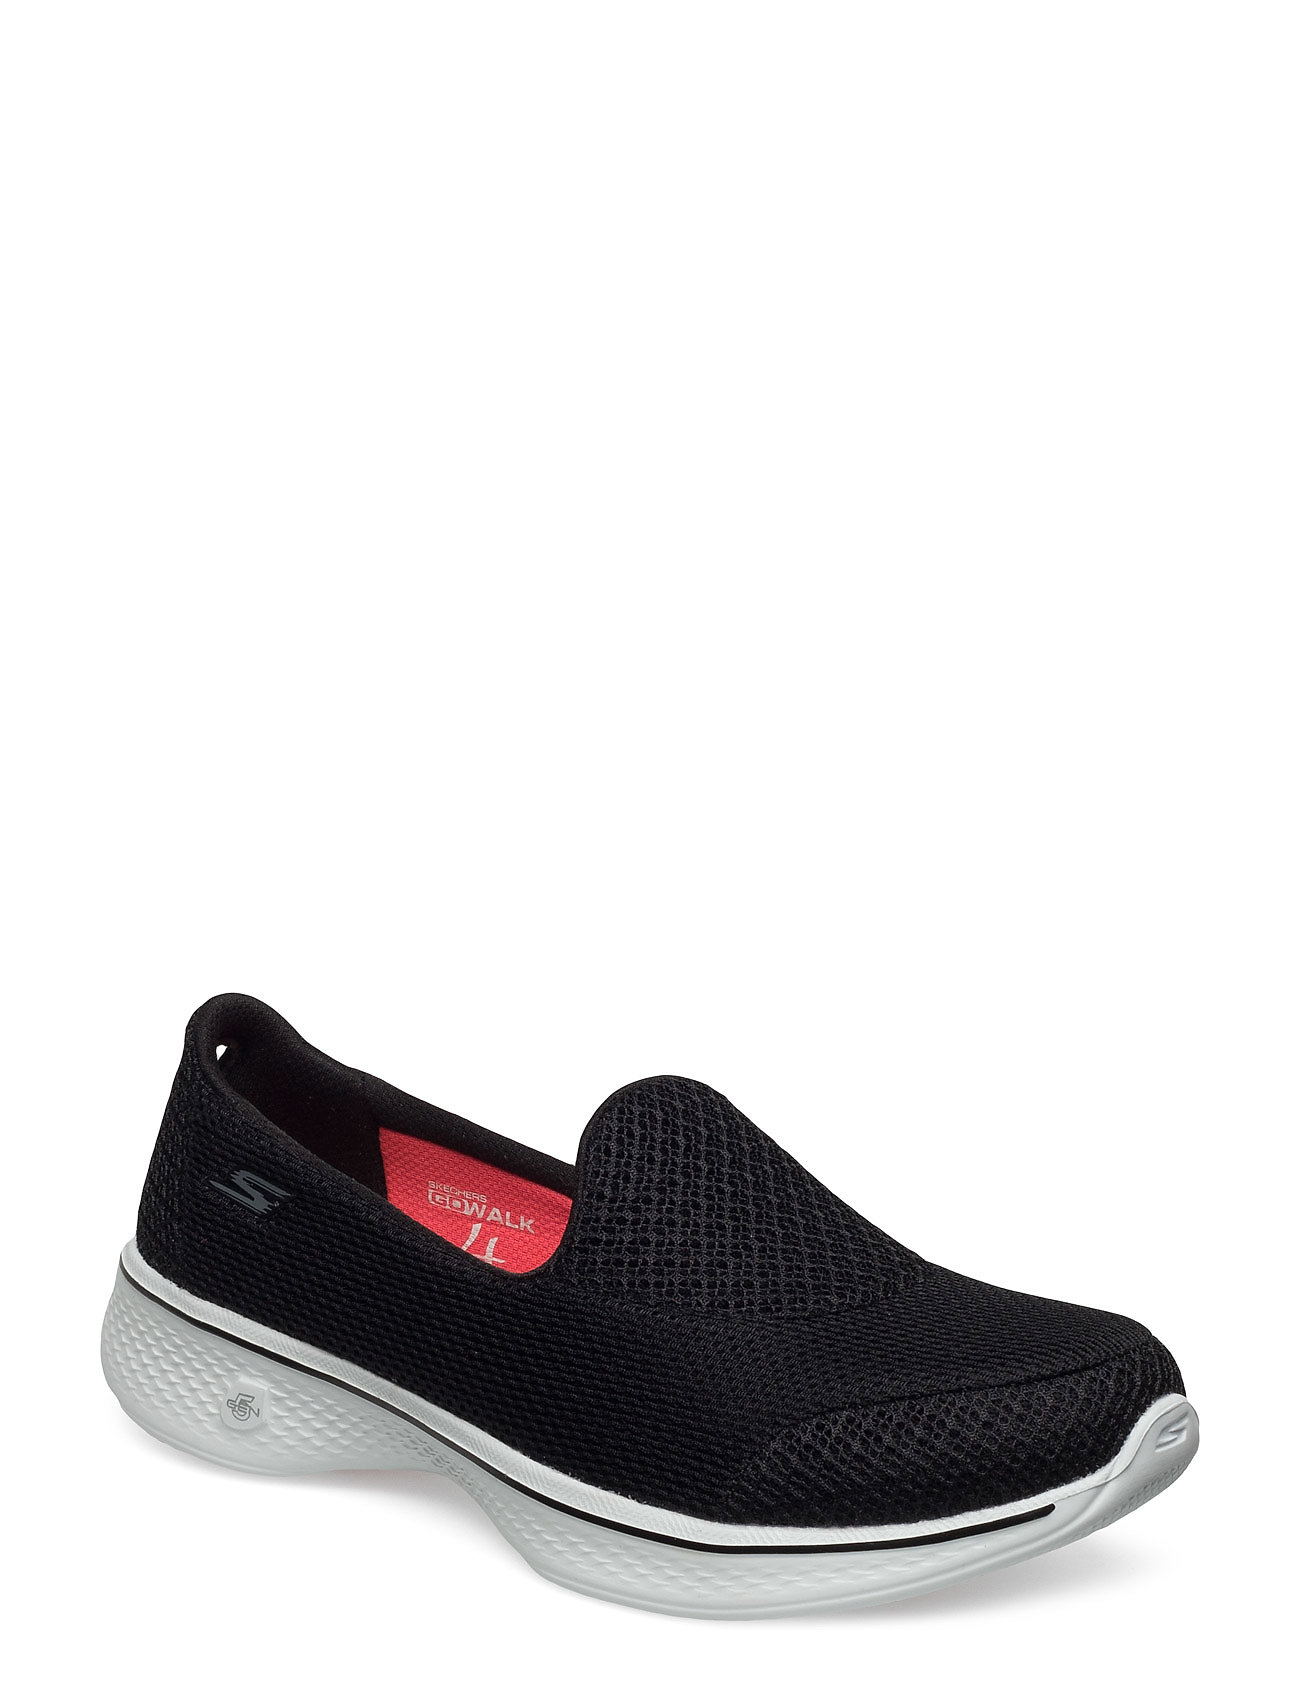 Womens Go Walk 4- Propel Skechers Sneakers til Damer i